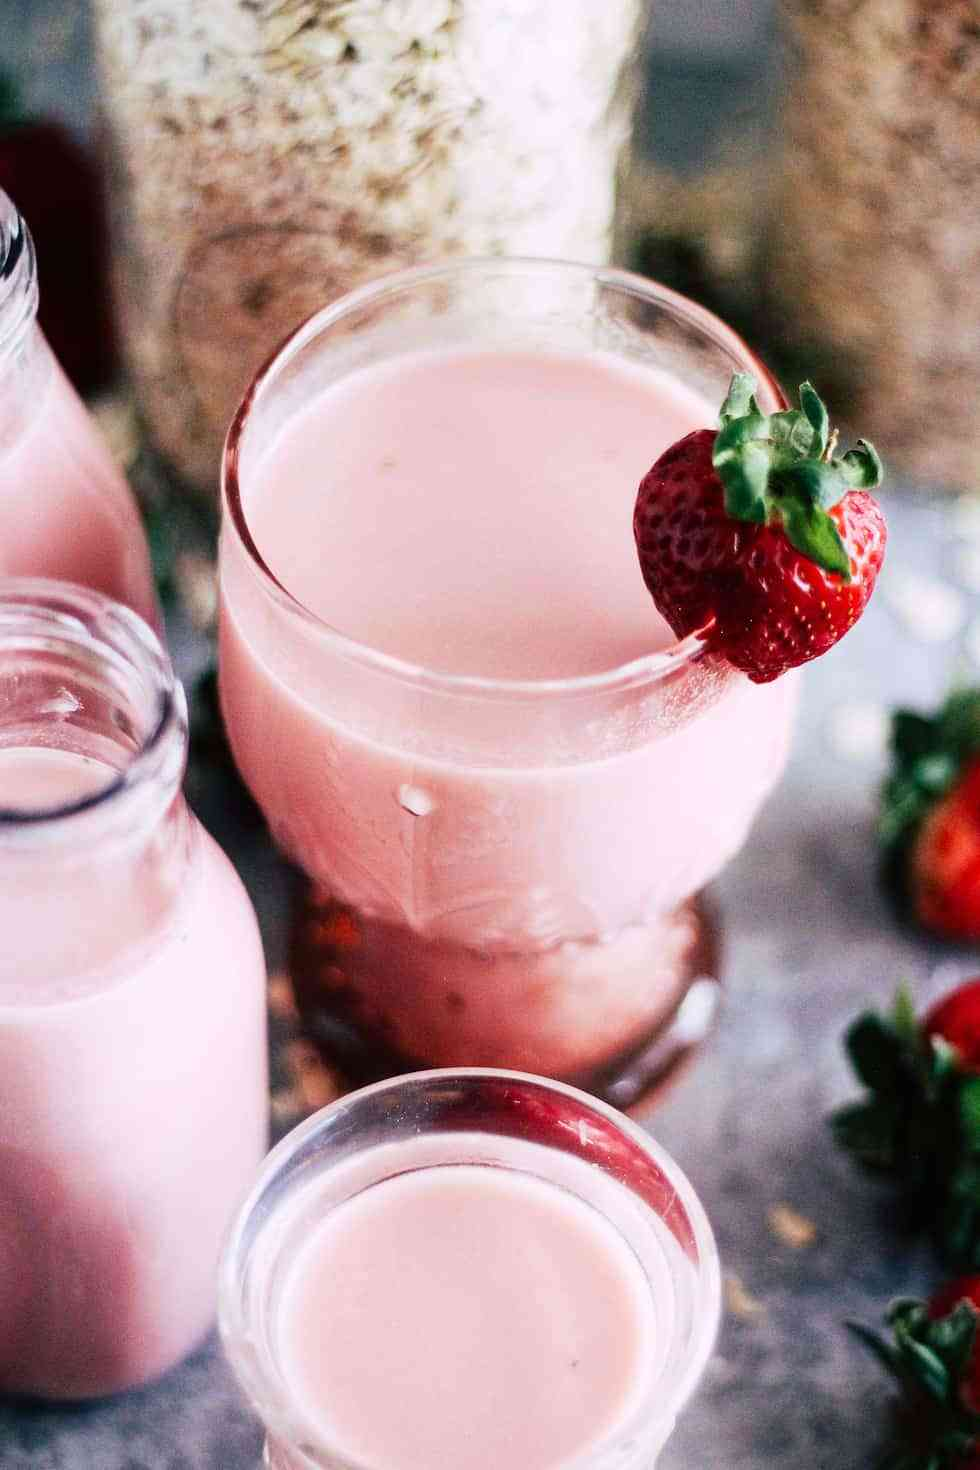 Vegan Strawberry Oat Milk in a pink glass with strawberry milk bottles next to it.